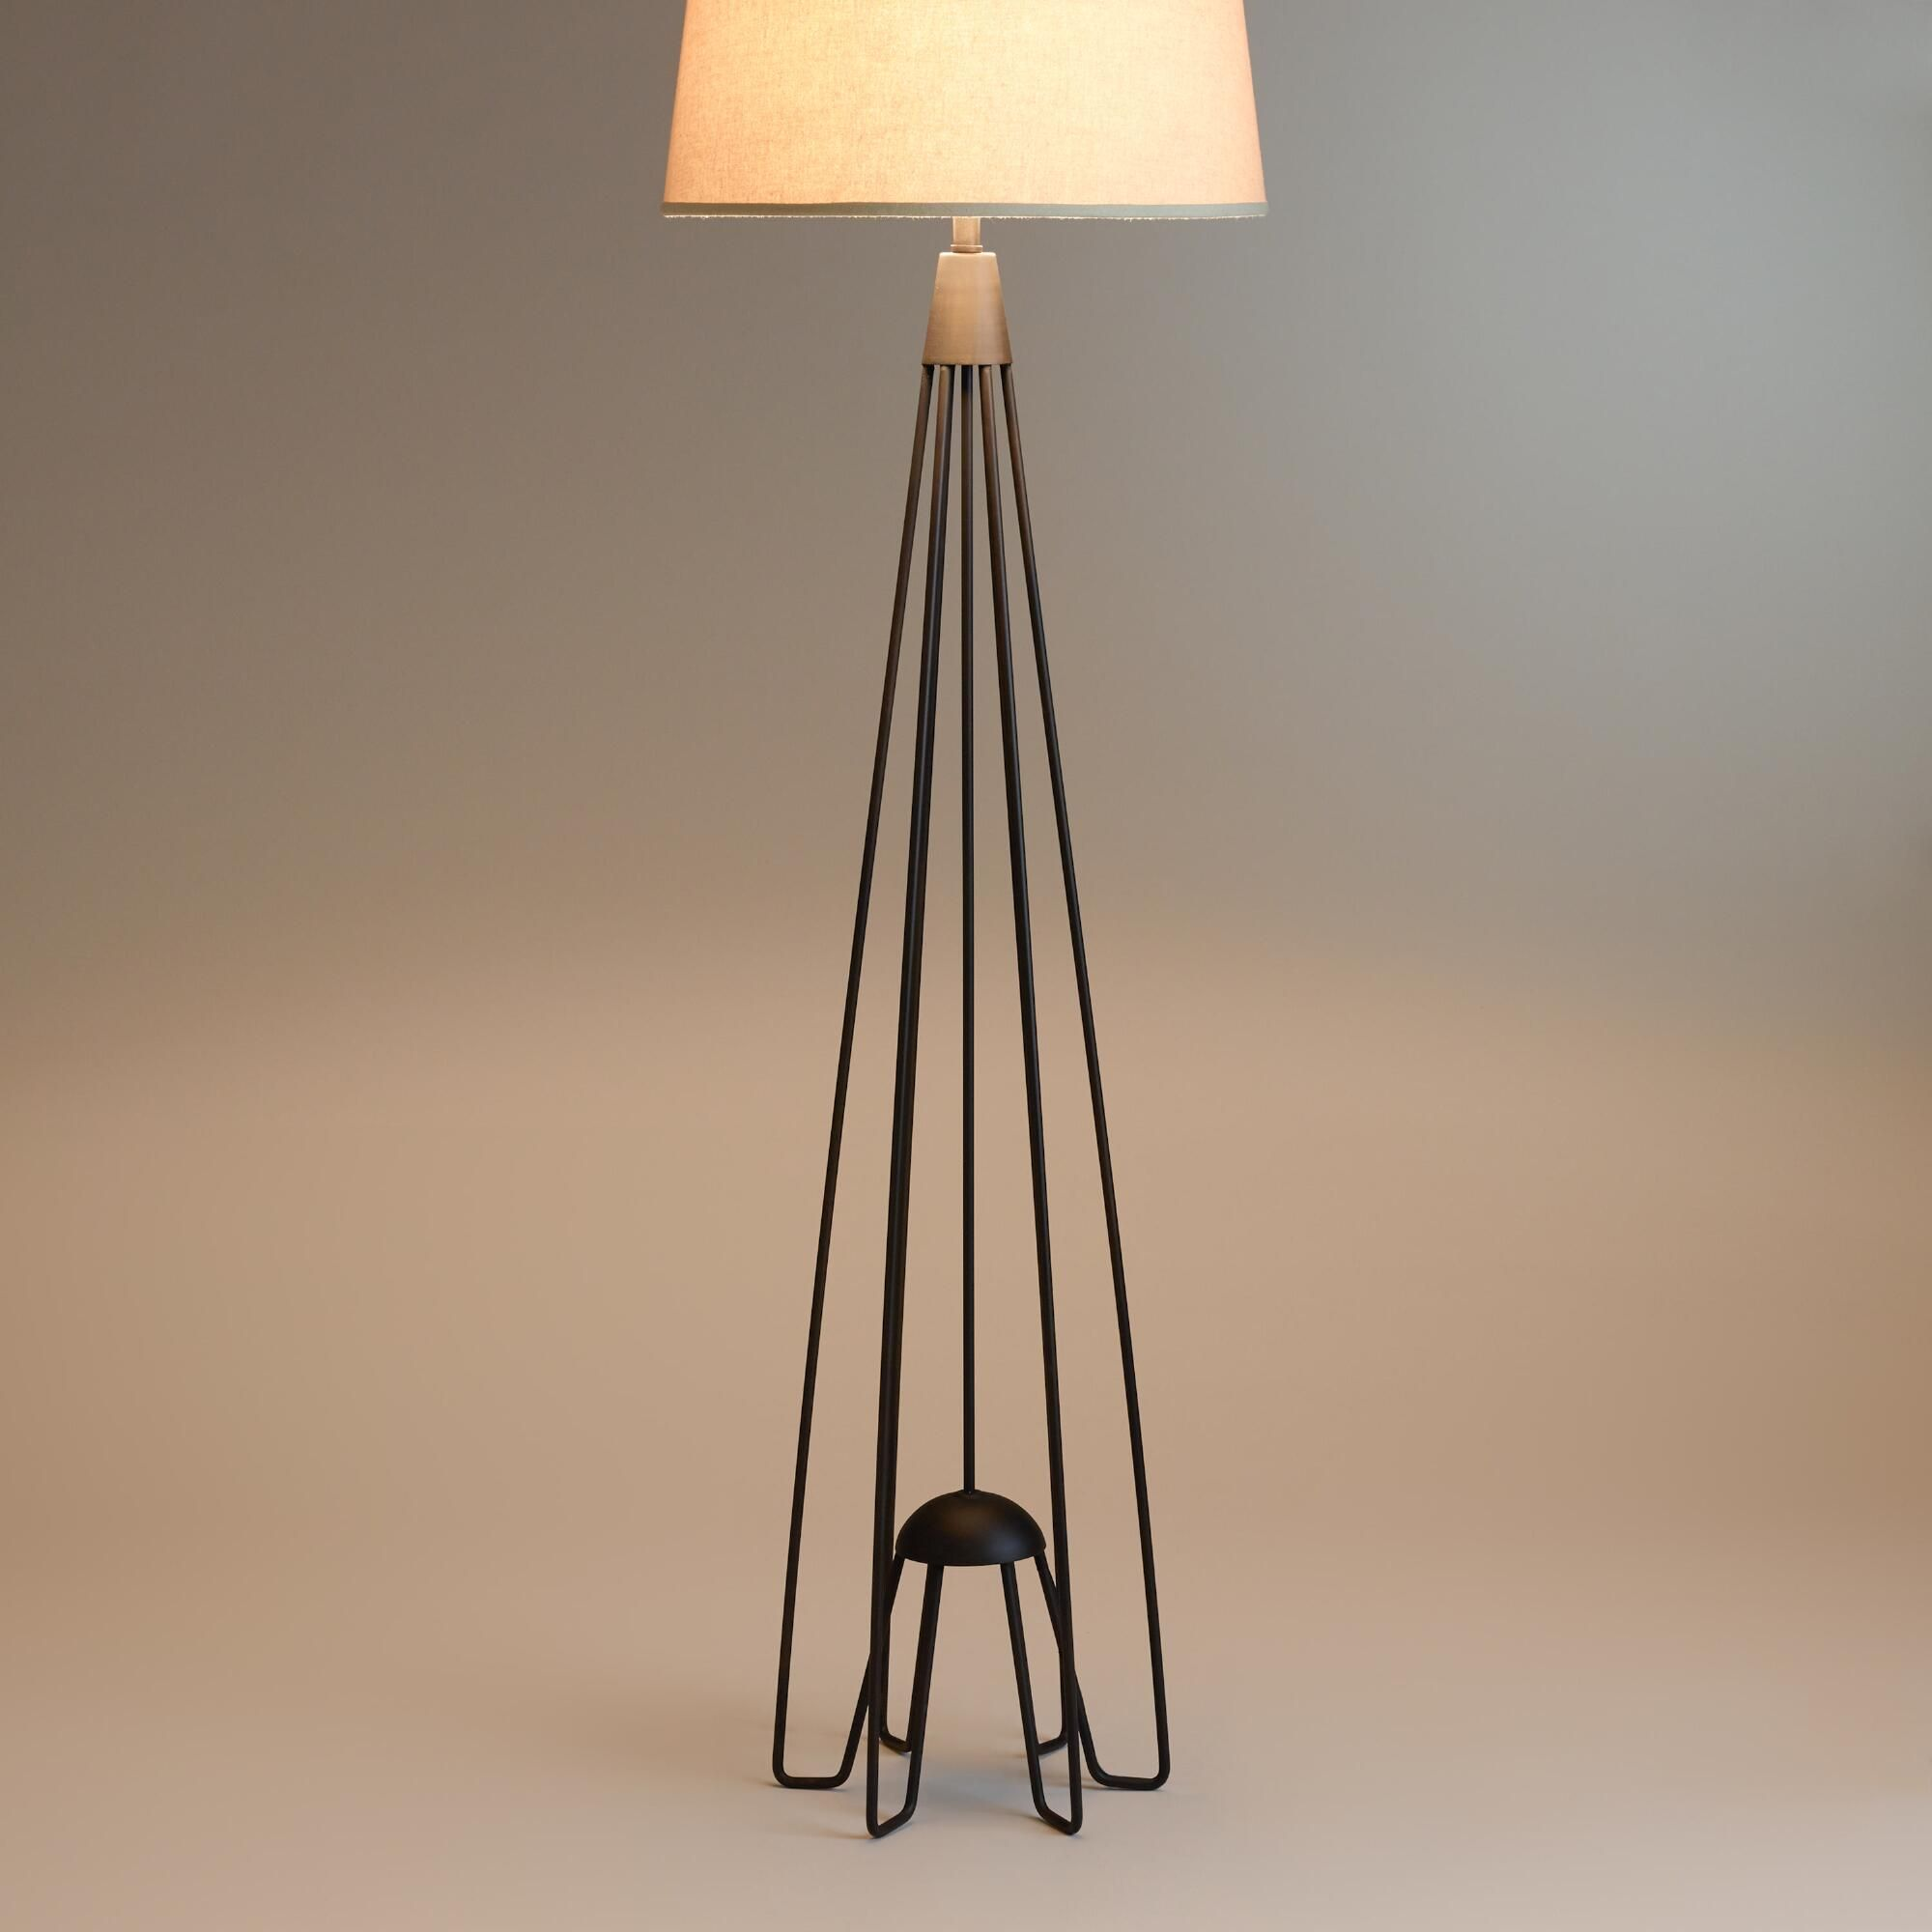 Iron Hairpin Kent Floor Lamp Base Hairpin Legs And Mid